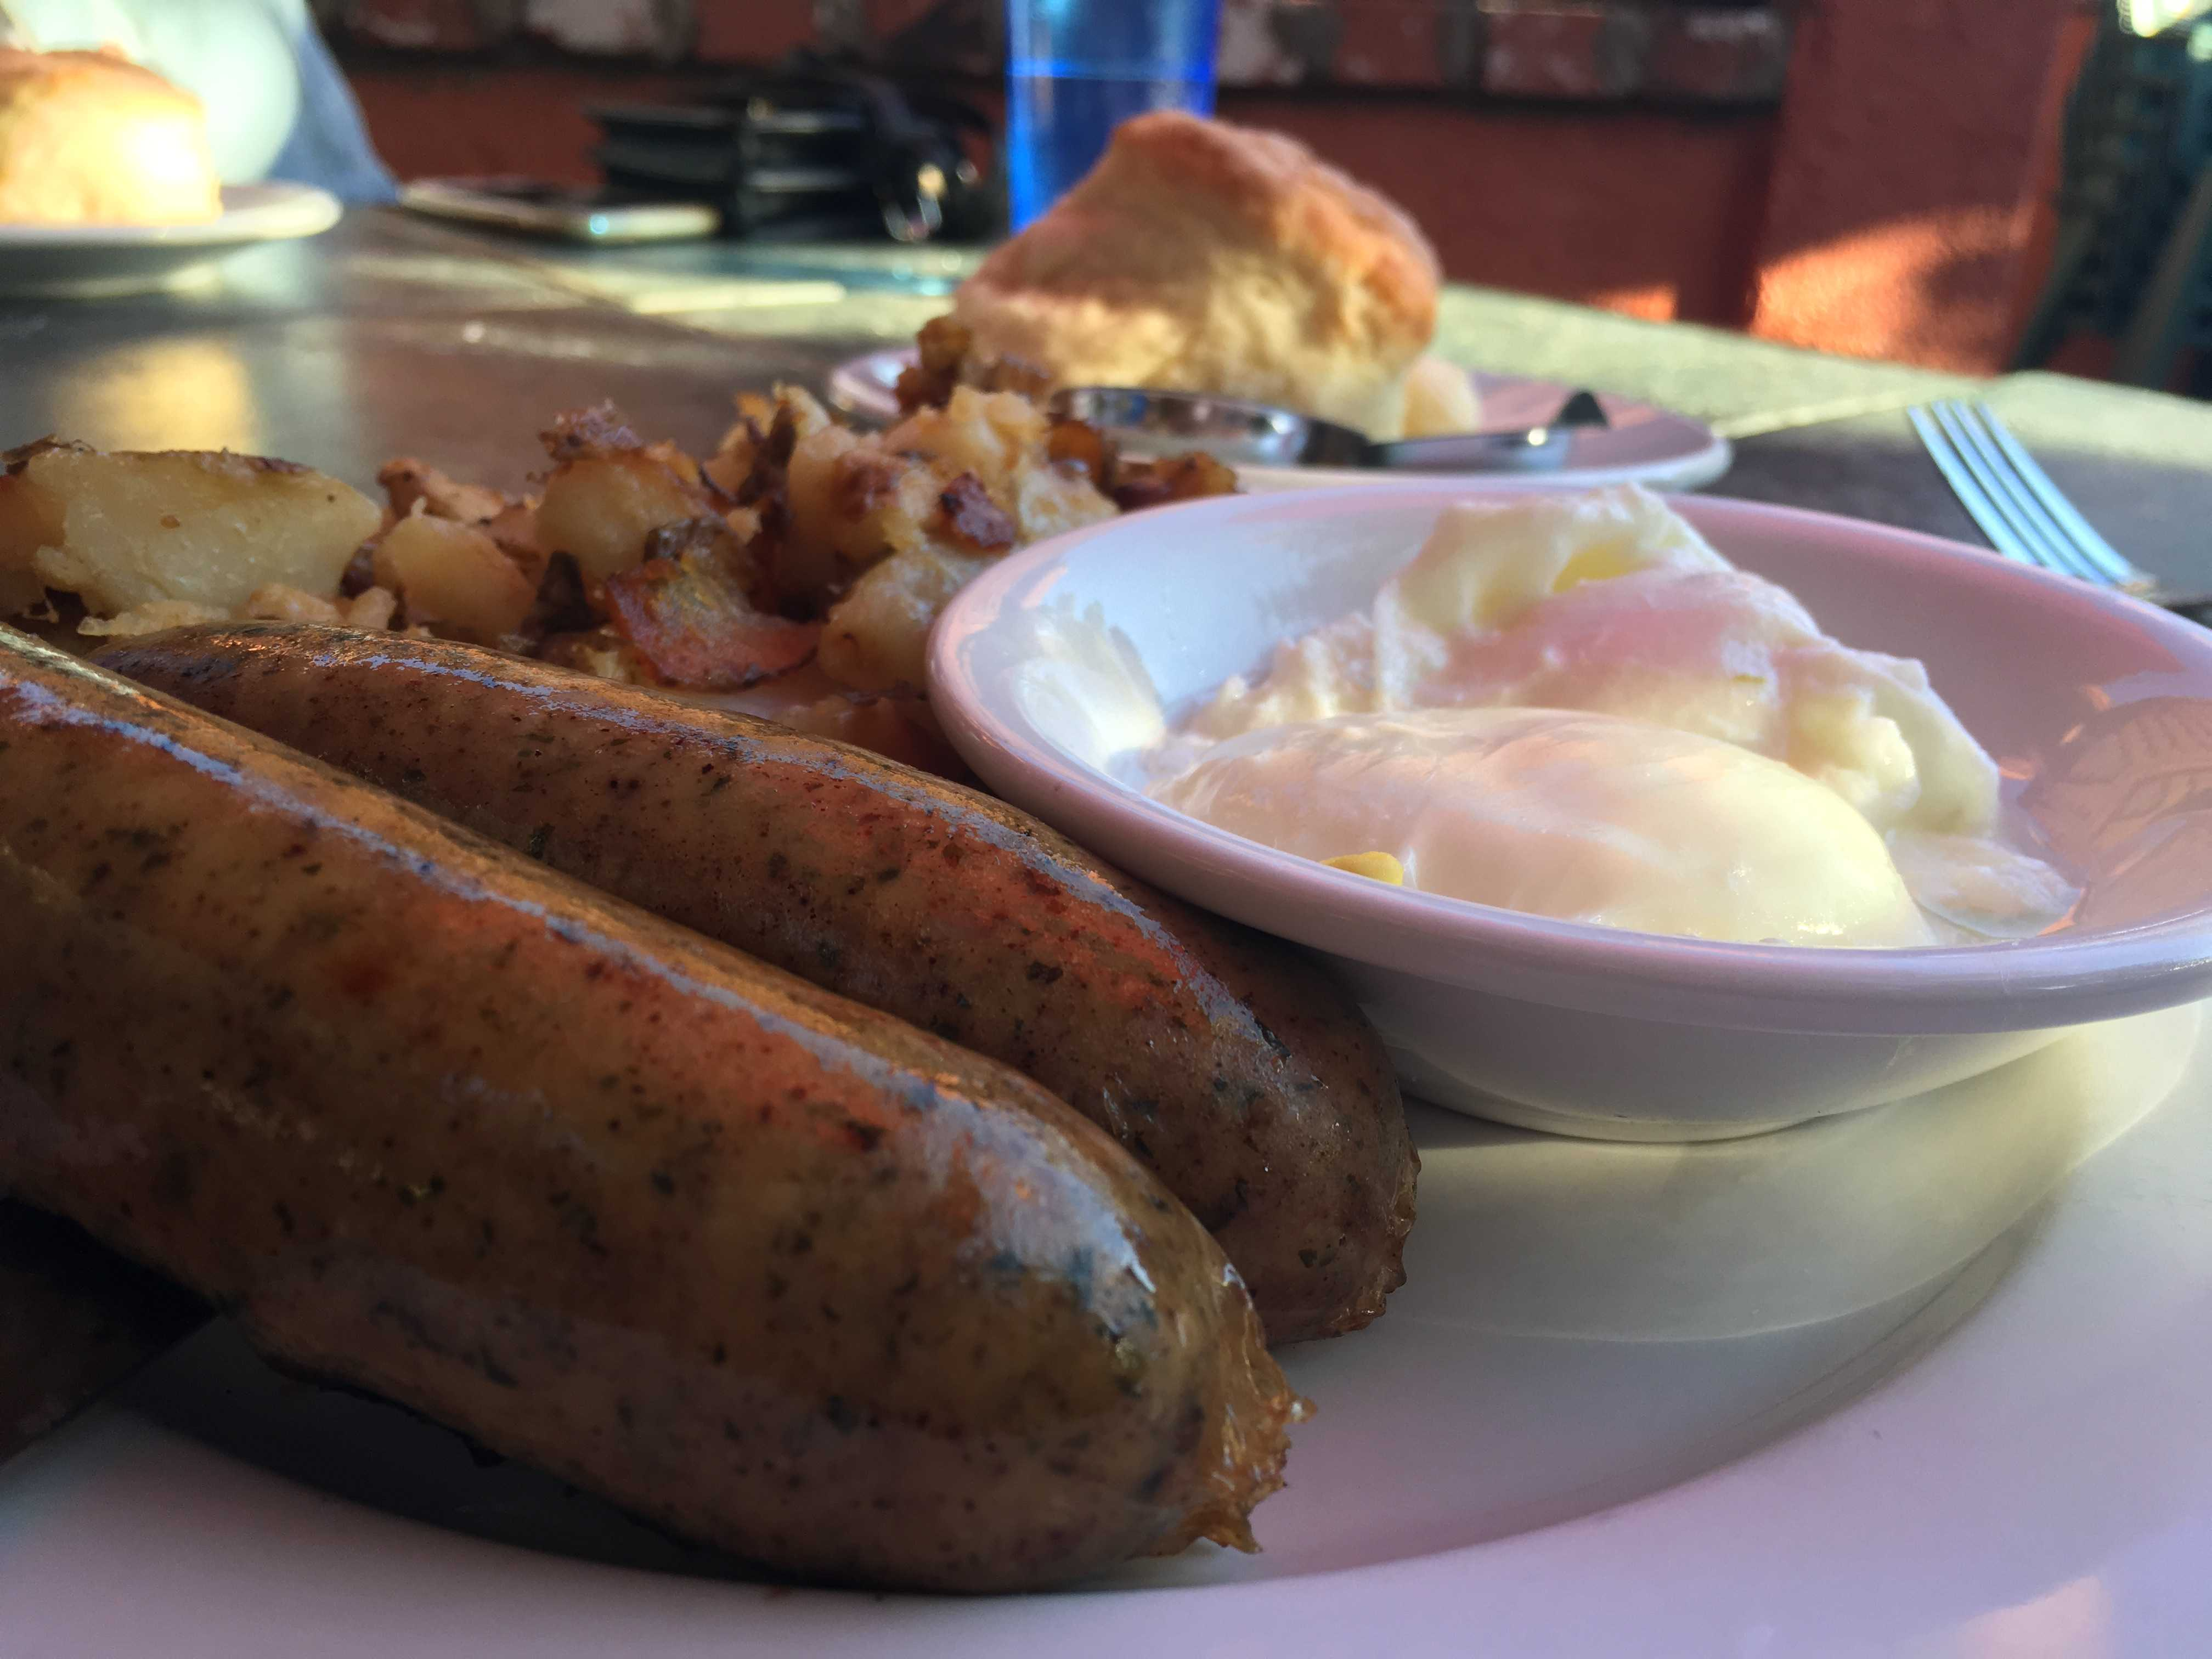 Cafe Noveau's Chicken Apple Sausage. Credit: Julia Fickenscher / The Foothill Dragon Press.